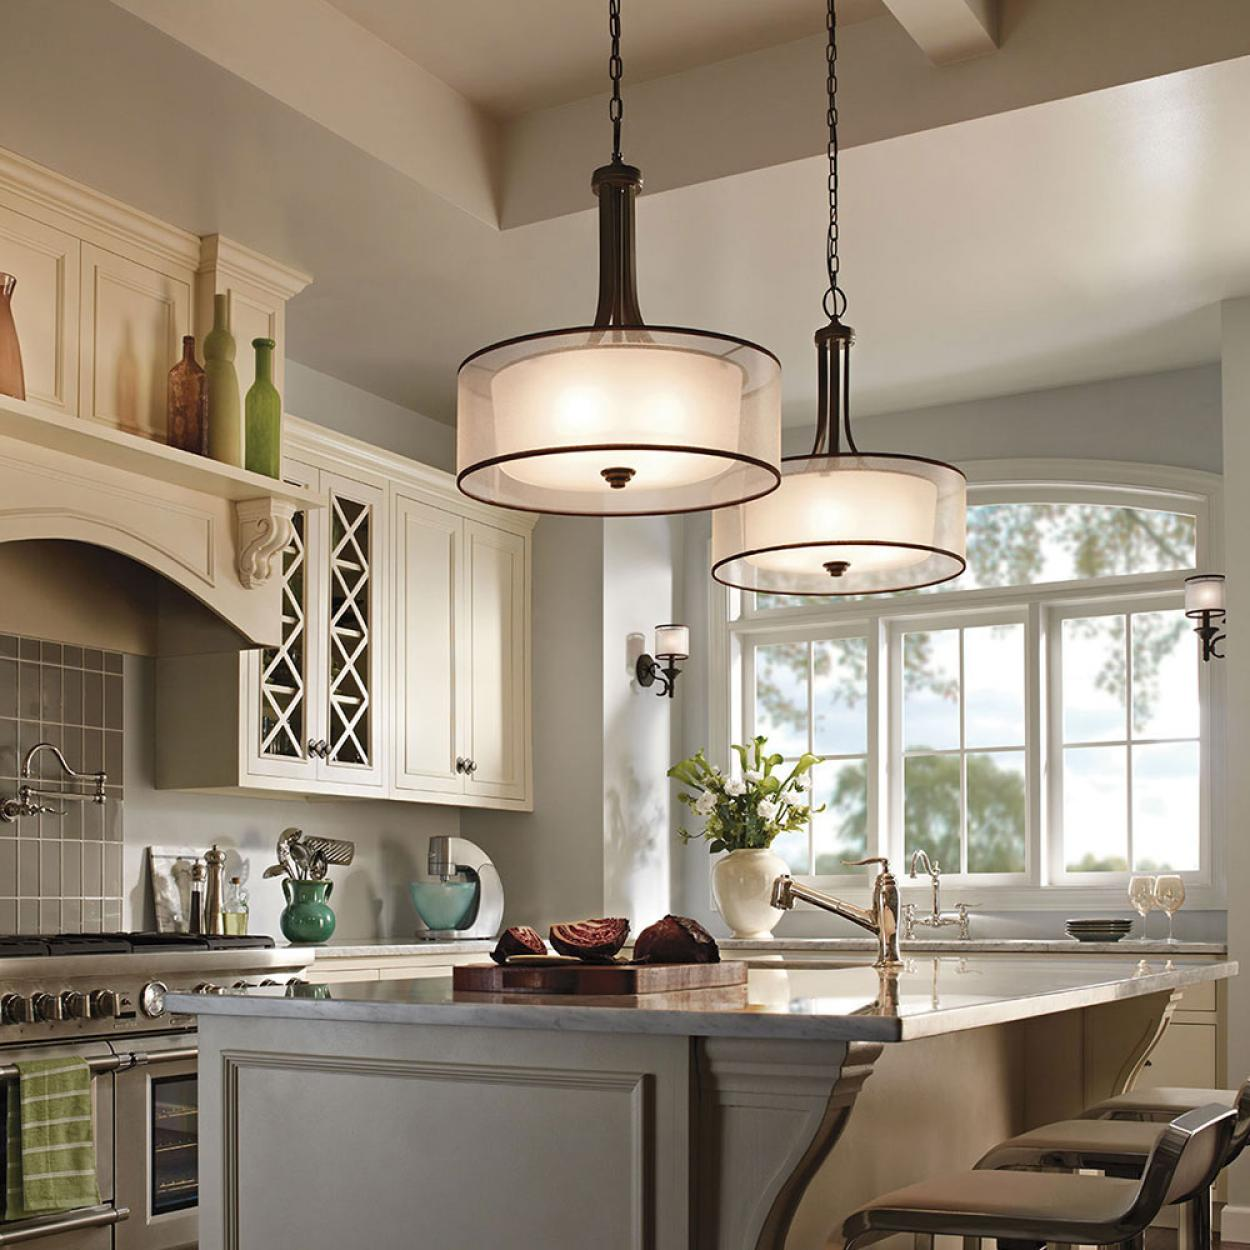 enchanting lighting kitchen design ideas for Small kitchen